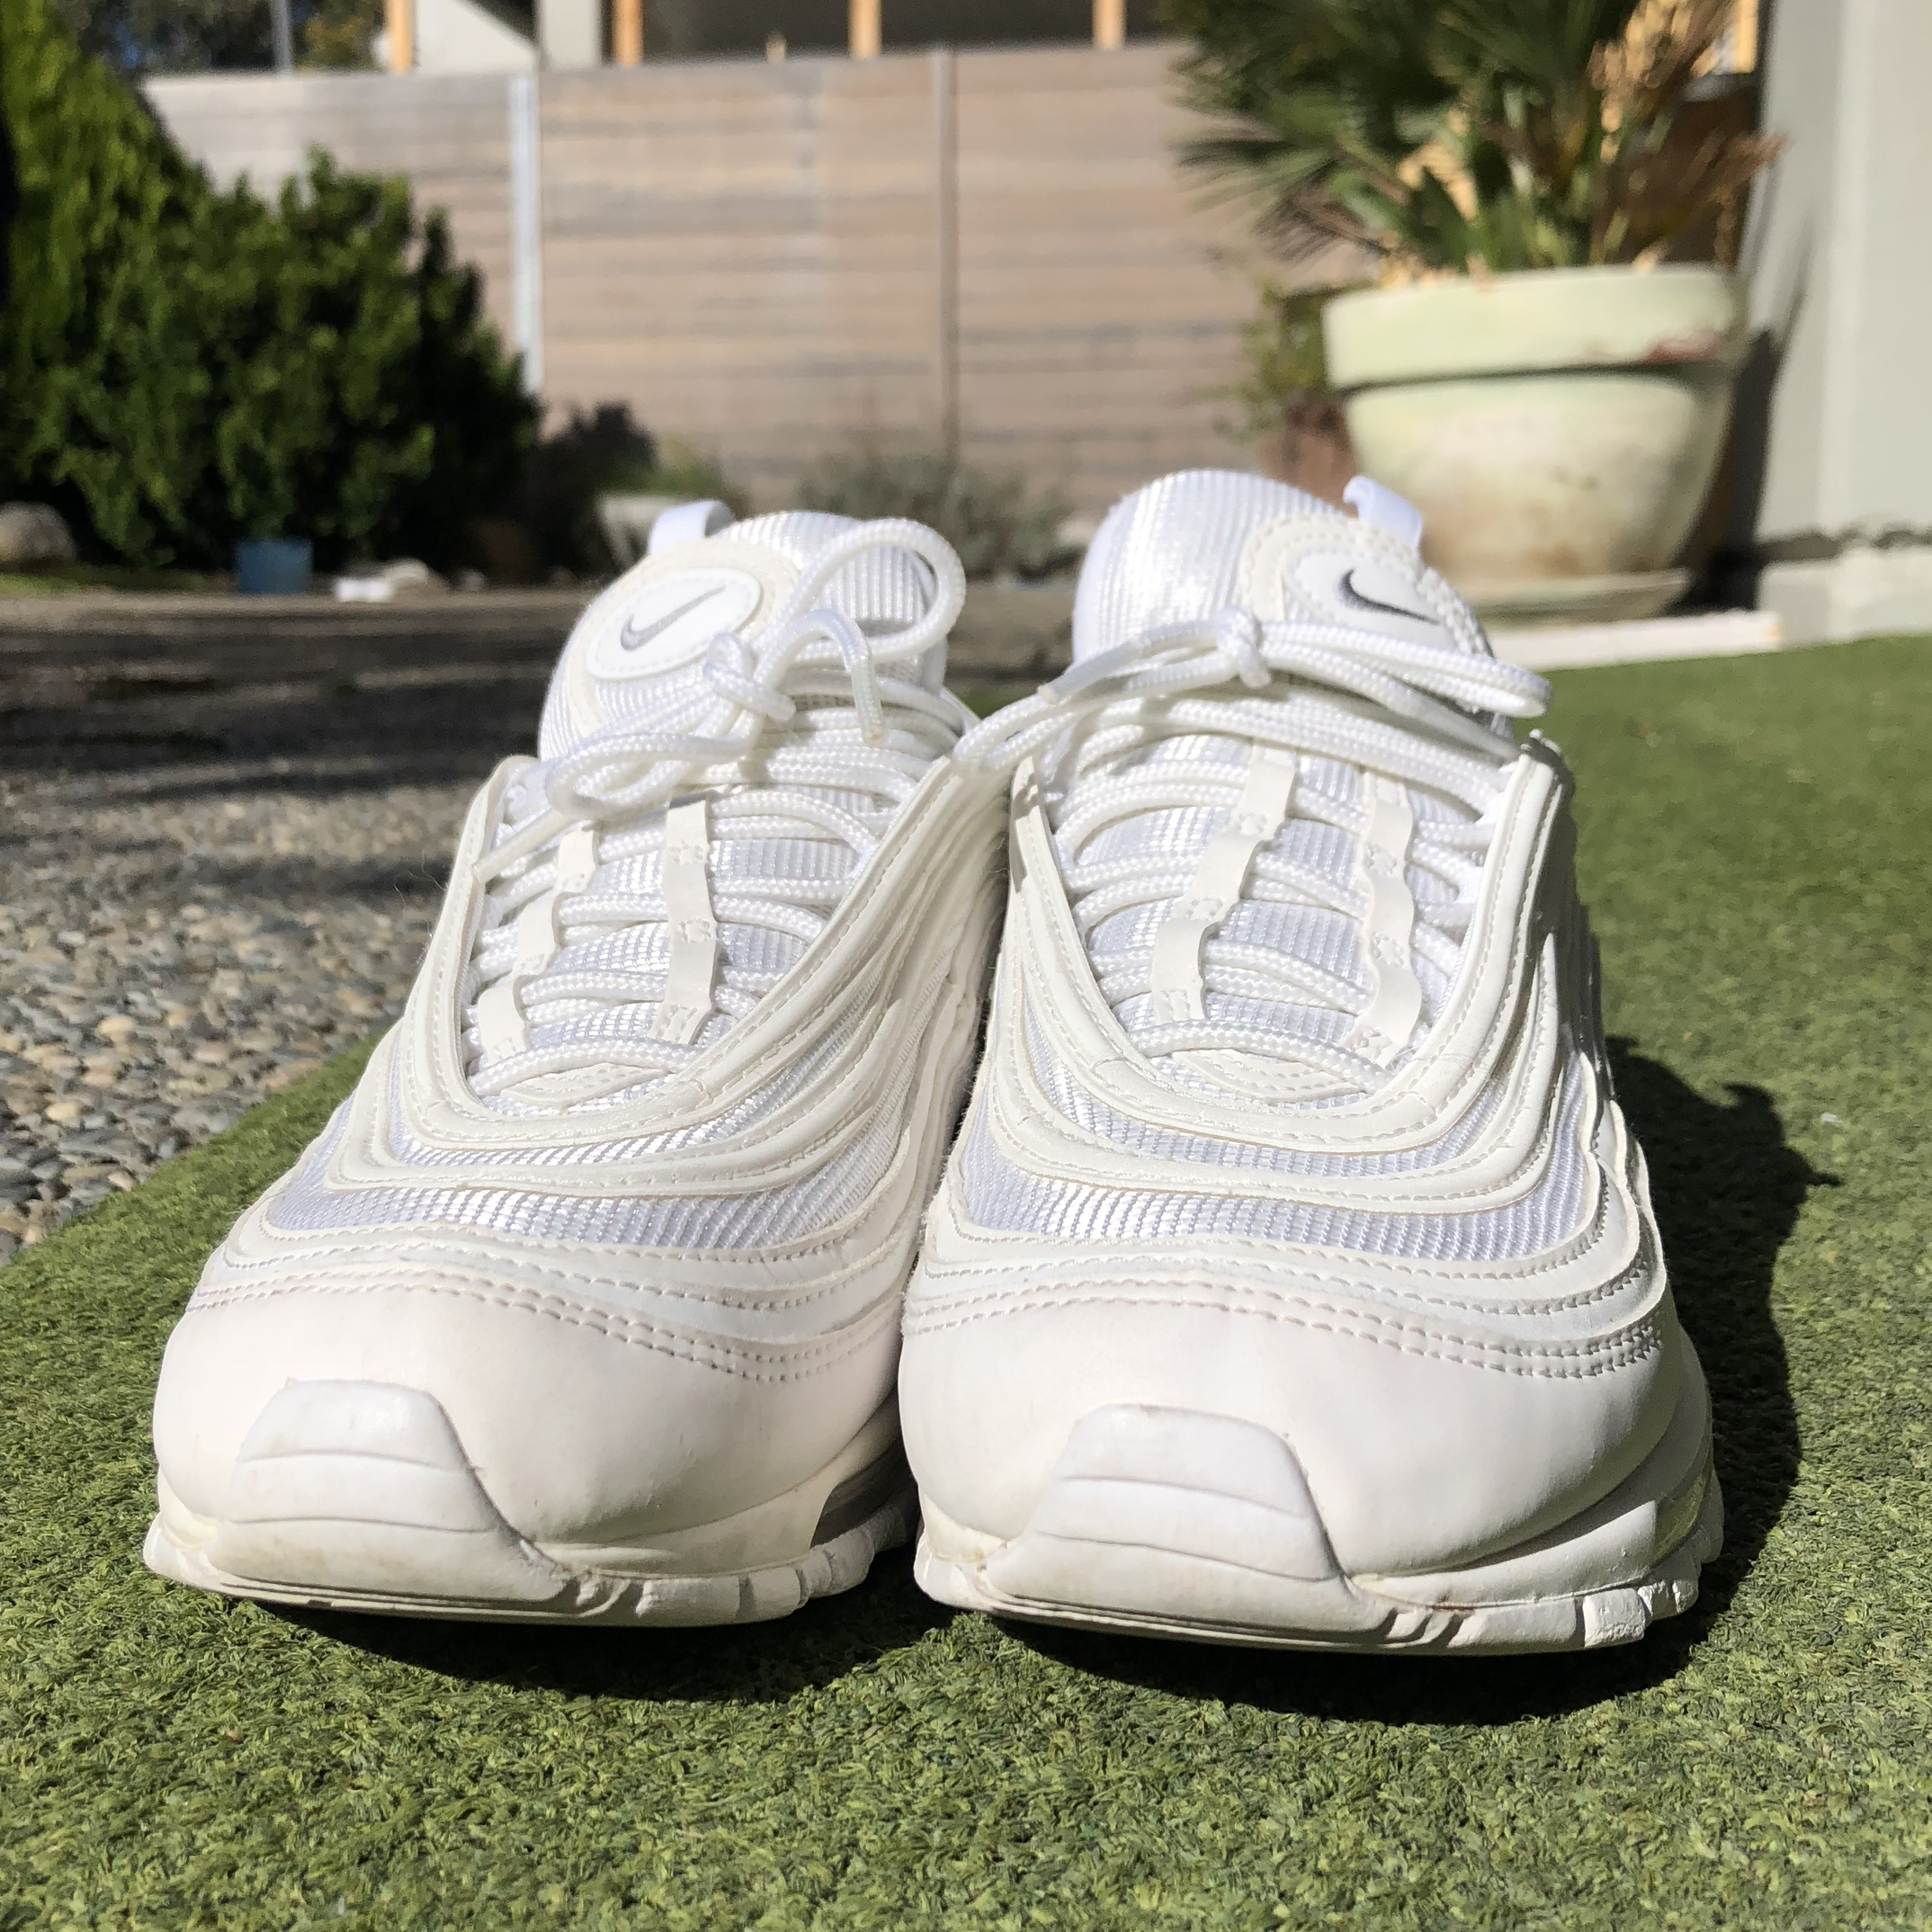 oben Nike Air Max 97 OG's White very good condition Depop zu